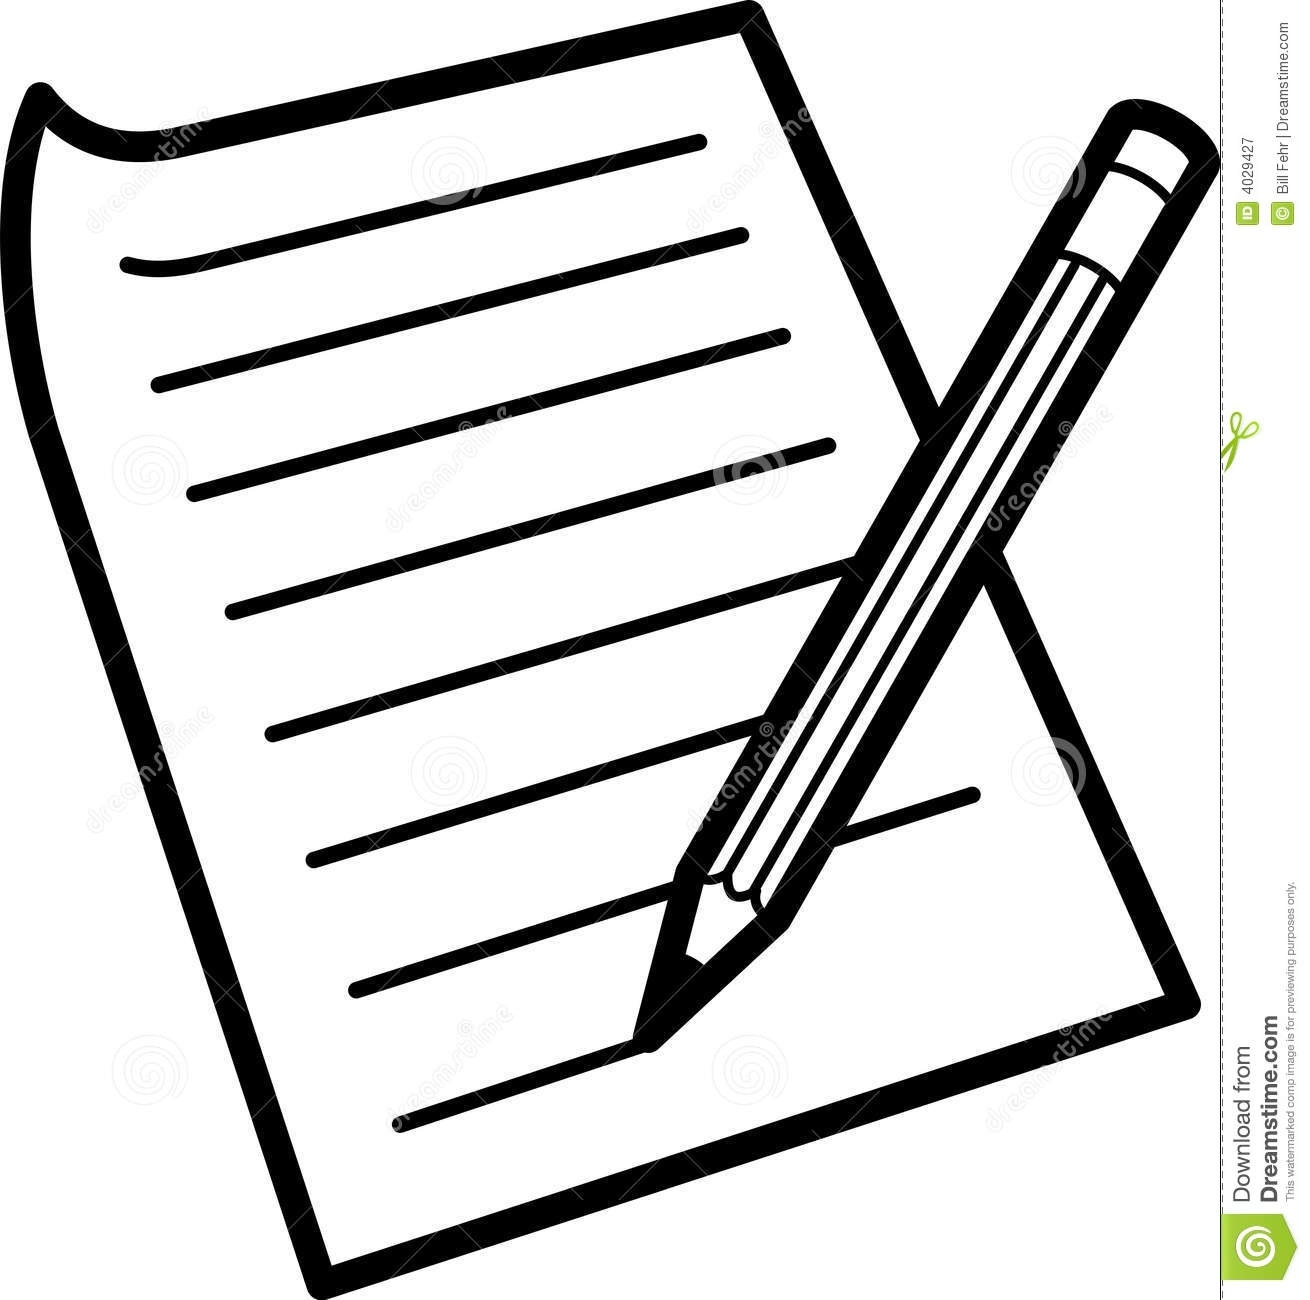 Essay clipart, Essay Transparent FREE for download on